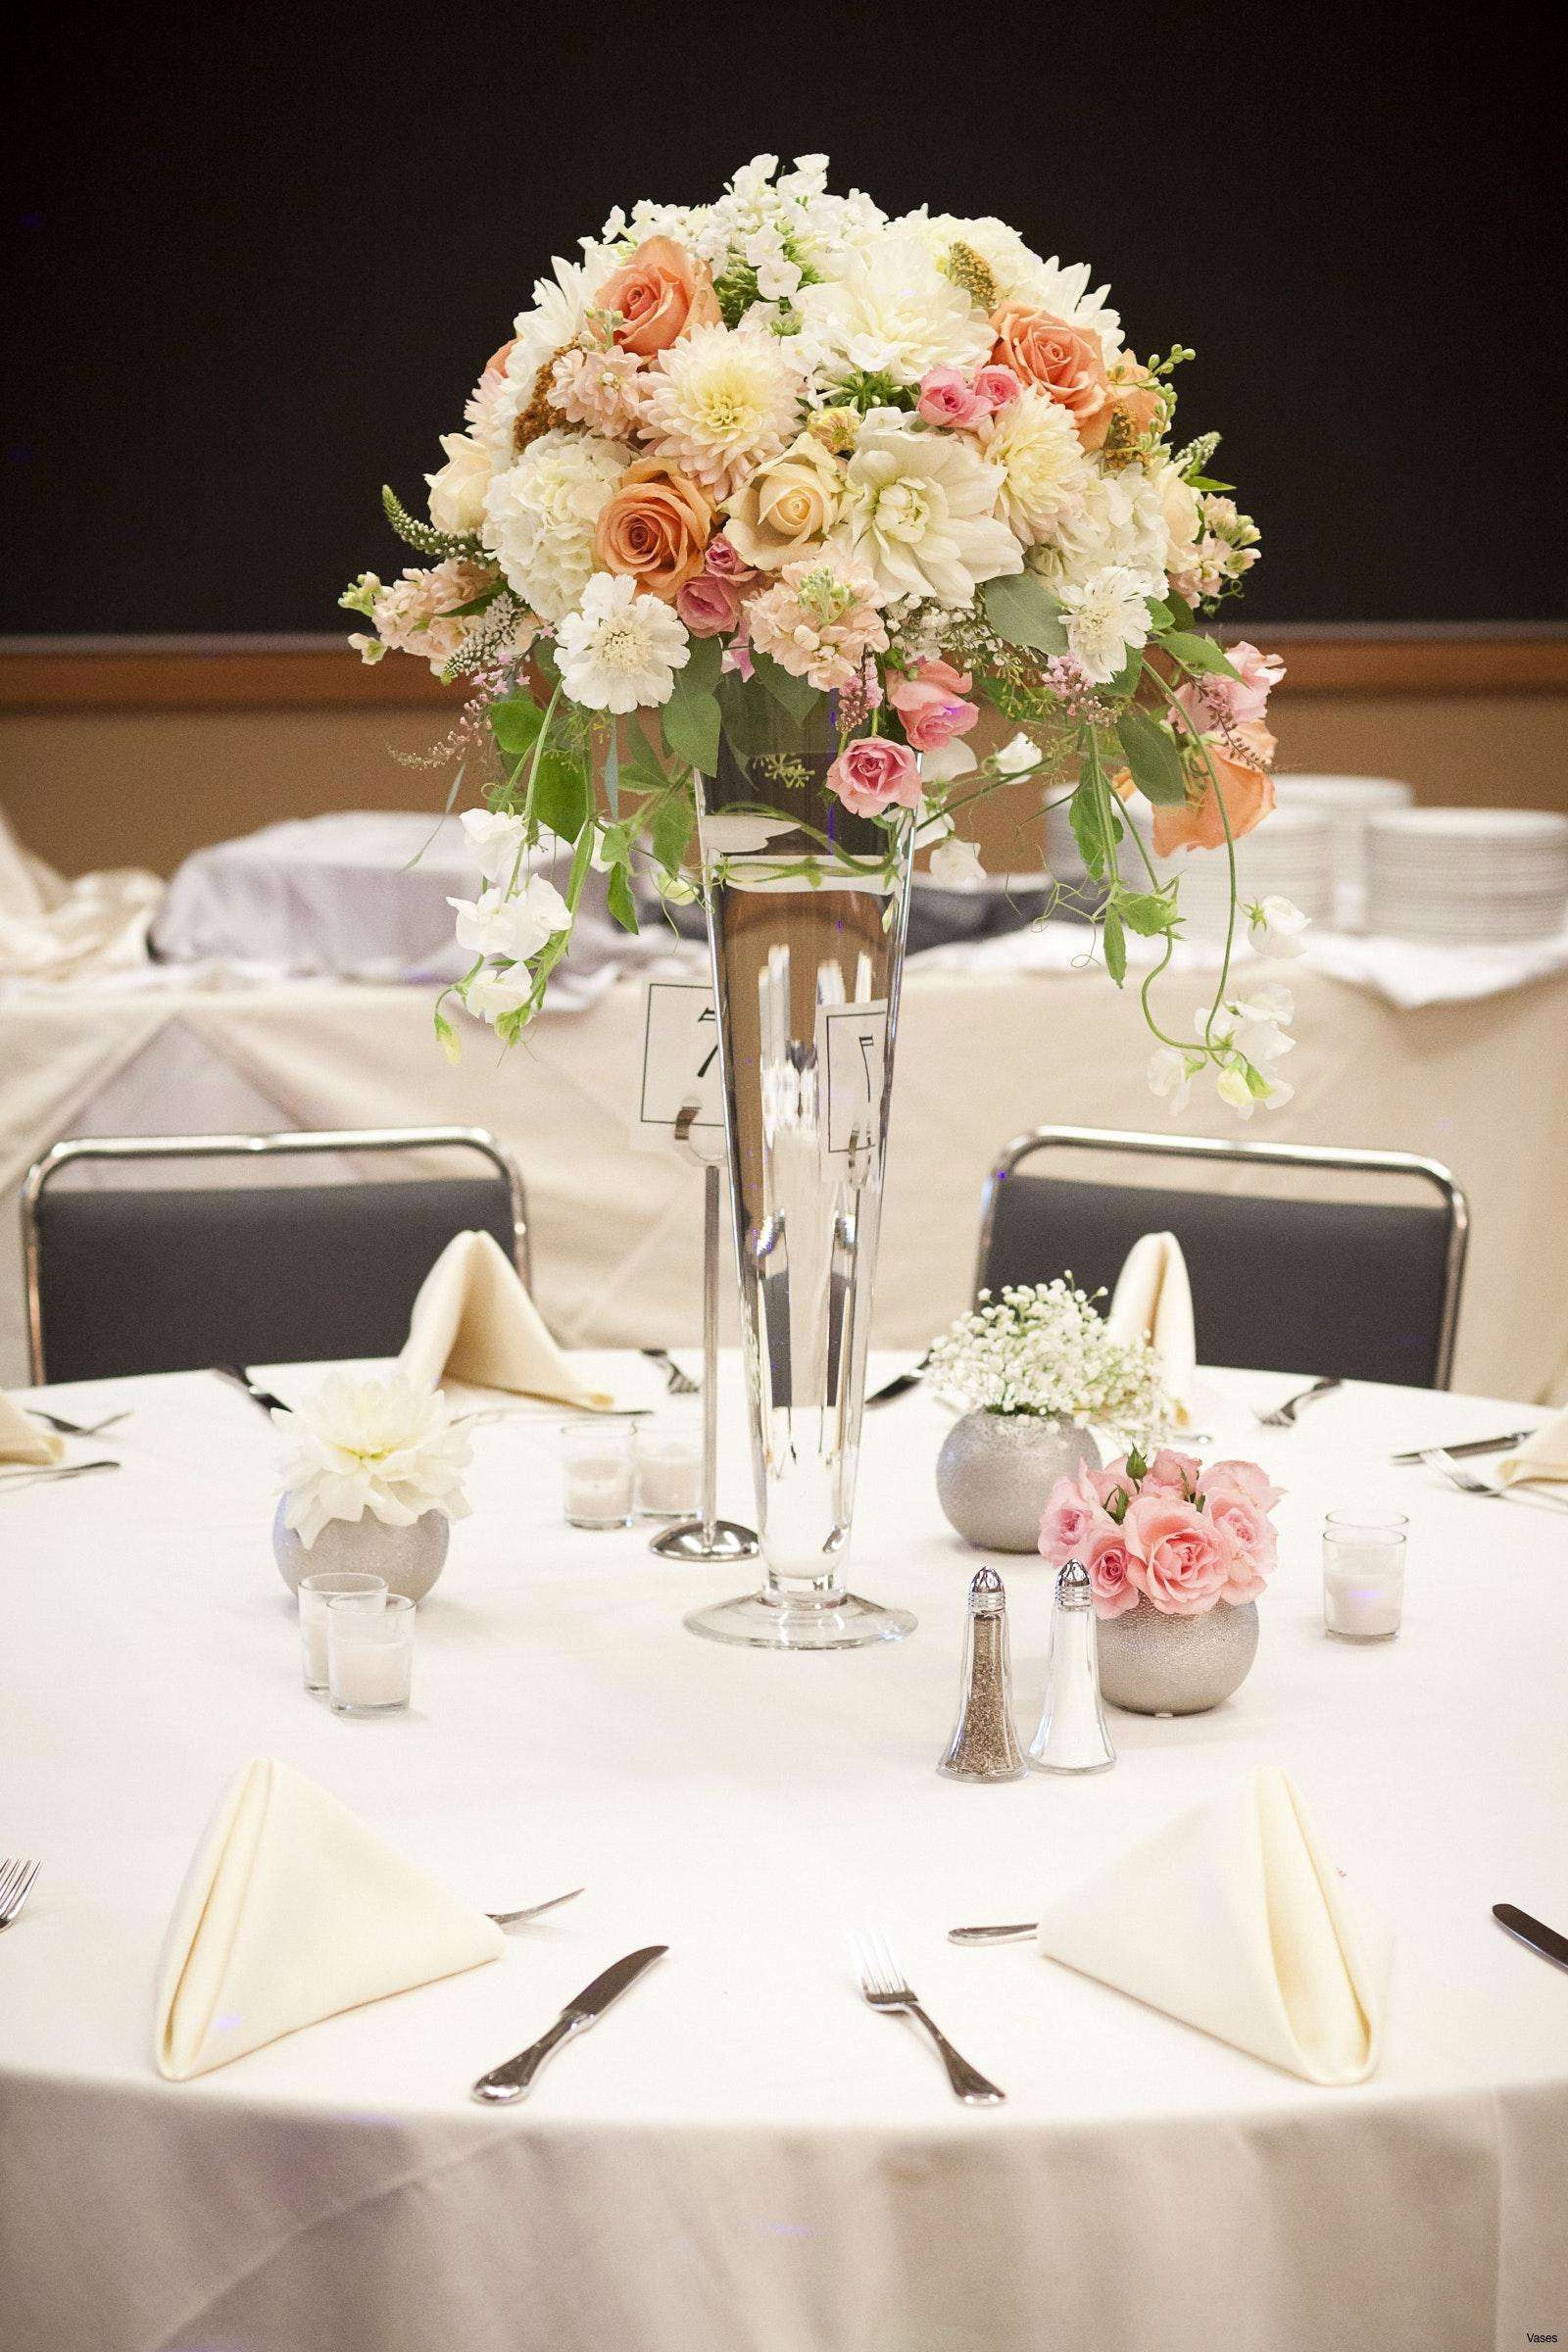 Gold Flower Vases wholesale Of Pictures Of Wedding Table On Engagement Rings Albuquerque In In Pictures Of Wedding Table On Engagement Rings Albuquerque In Decorations Inspirational Living Room Vases Wedding Inspirational H Vases Candy Vase I 0d Of